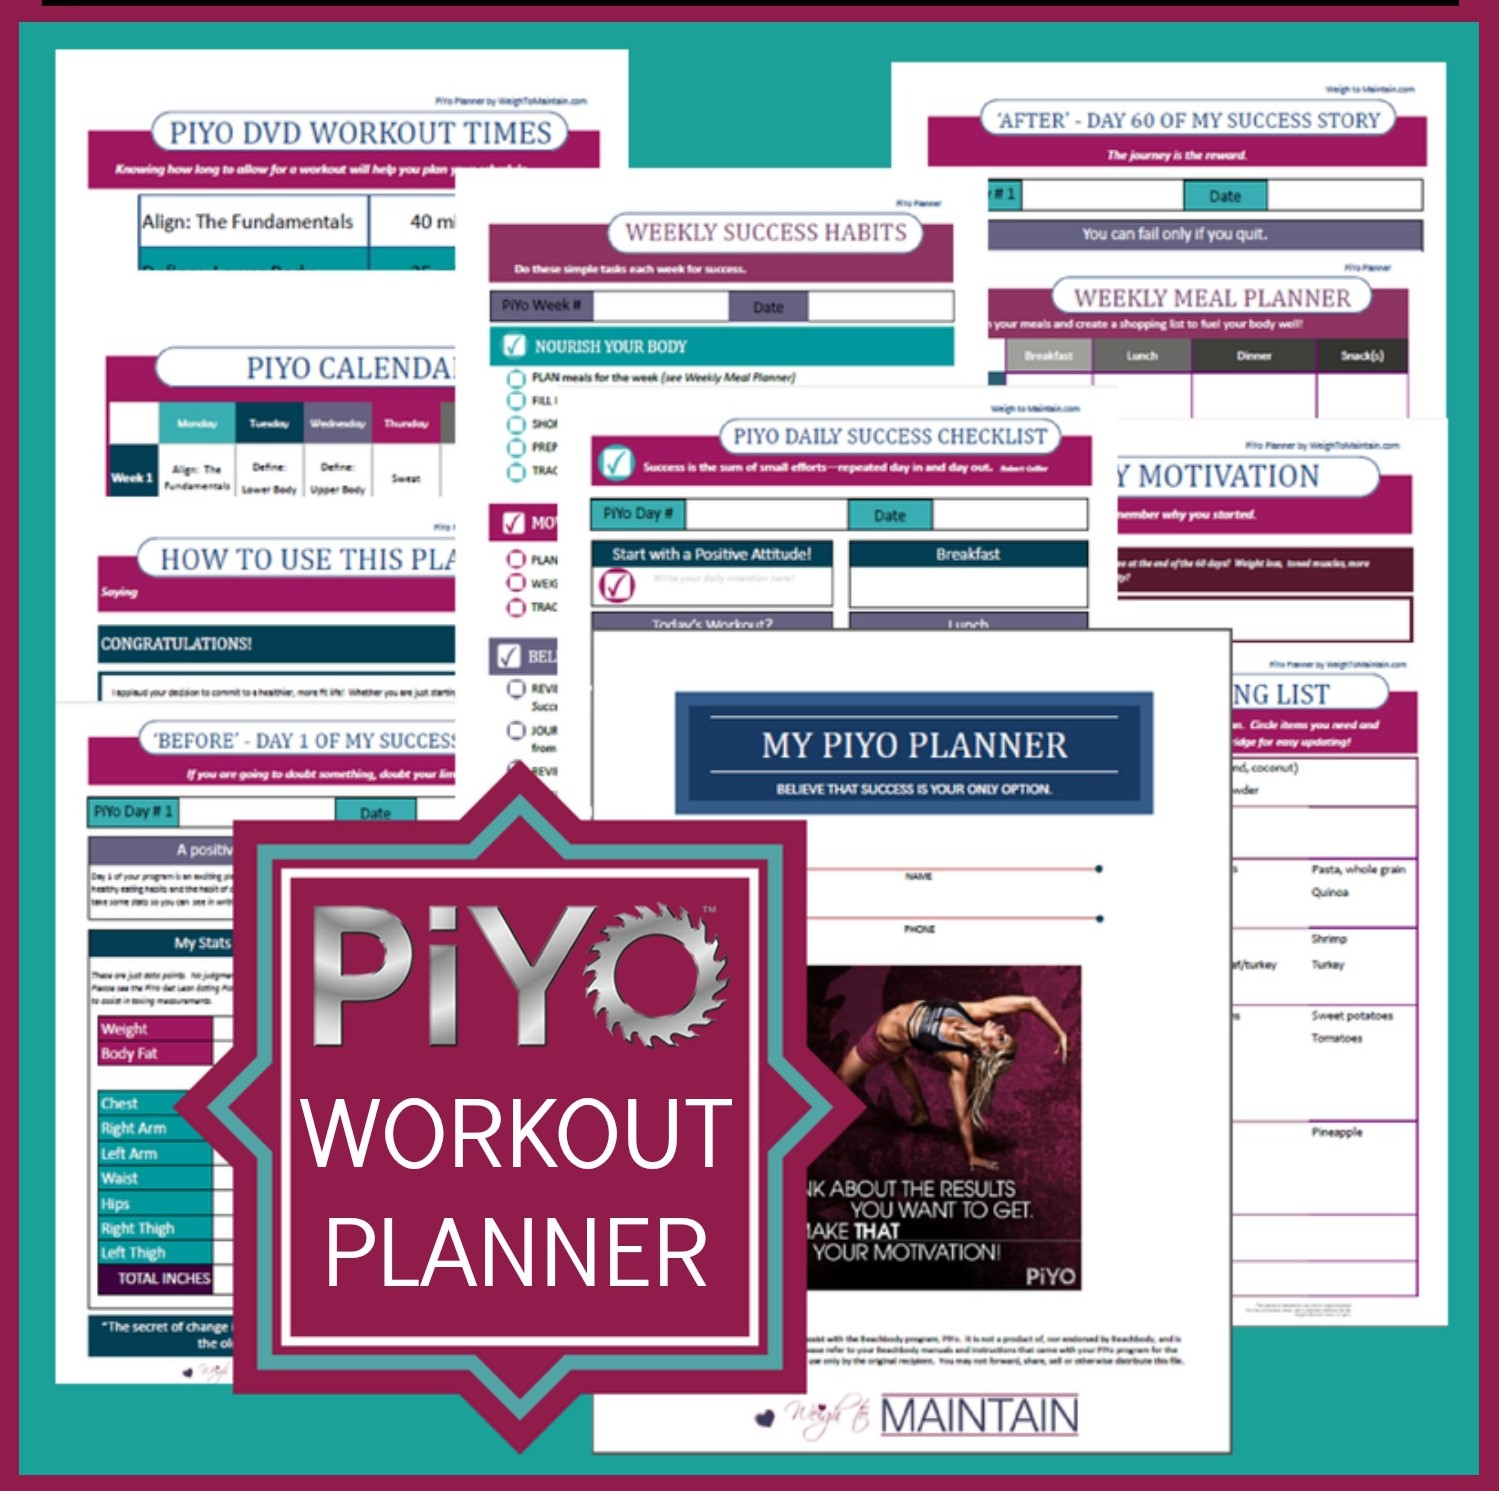 PiYo Planner - Printable PiYo Workout Journal to plan meals, log food and workouts, and track your progress every day of the PiYo program!